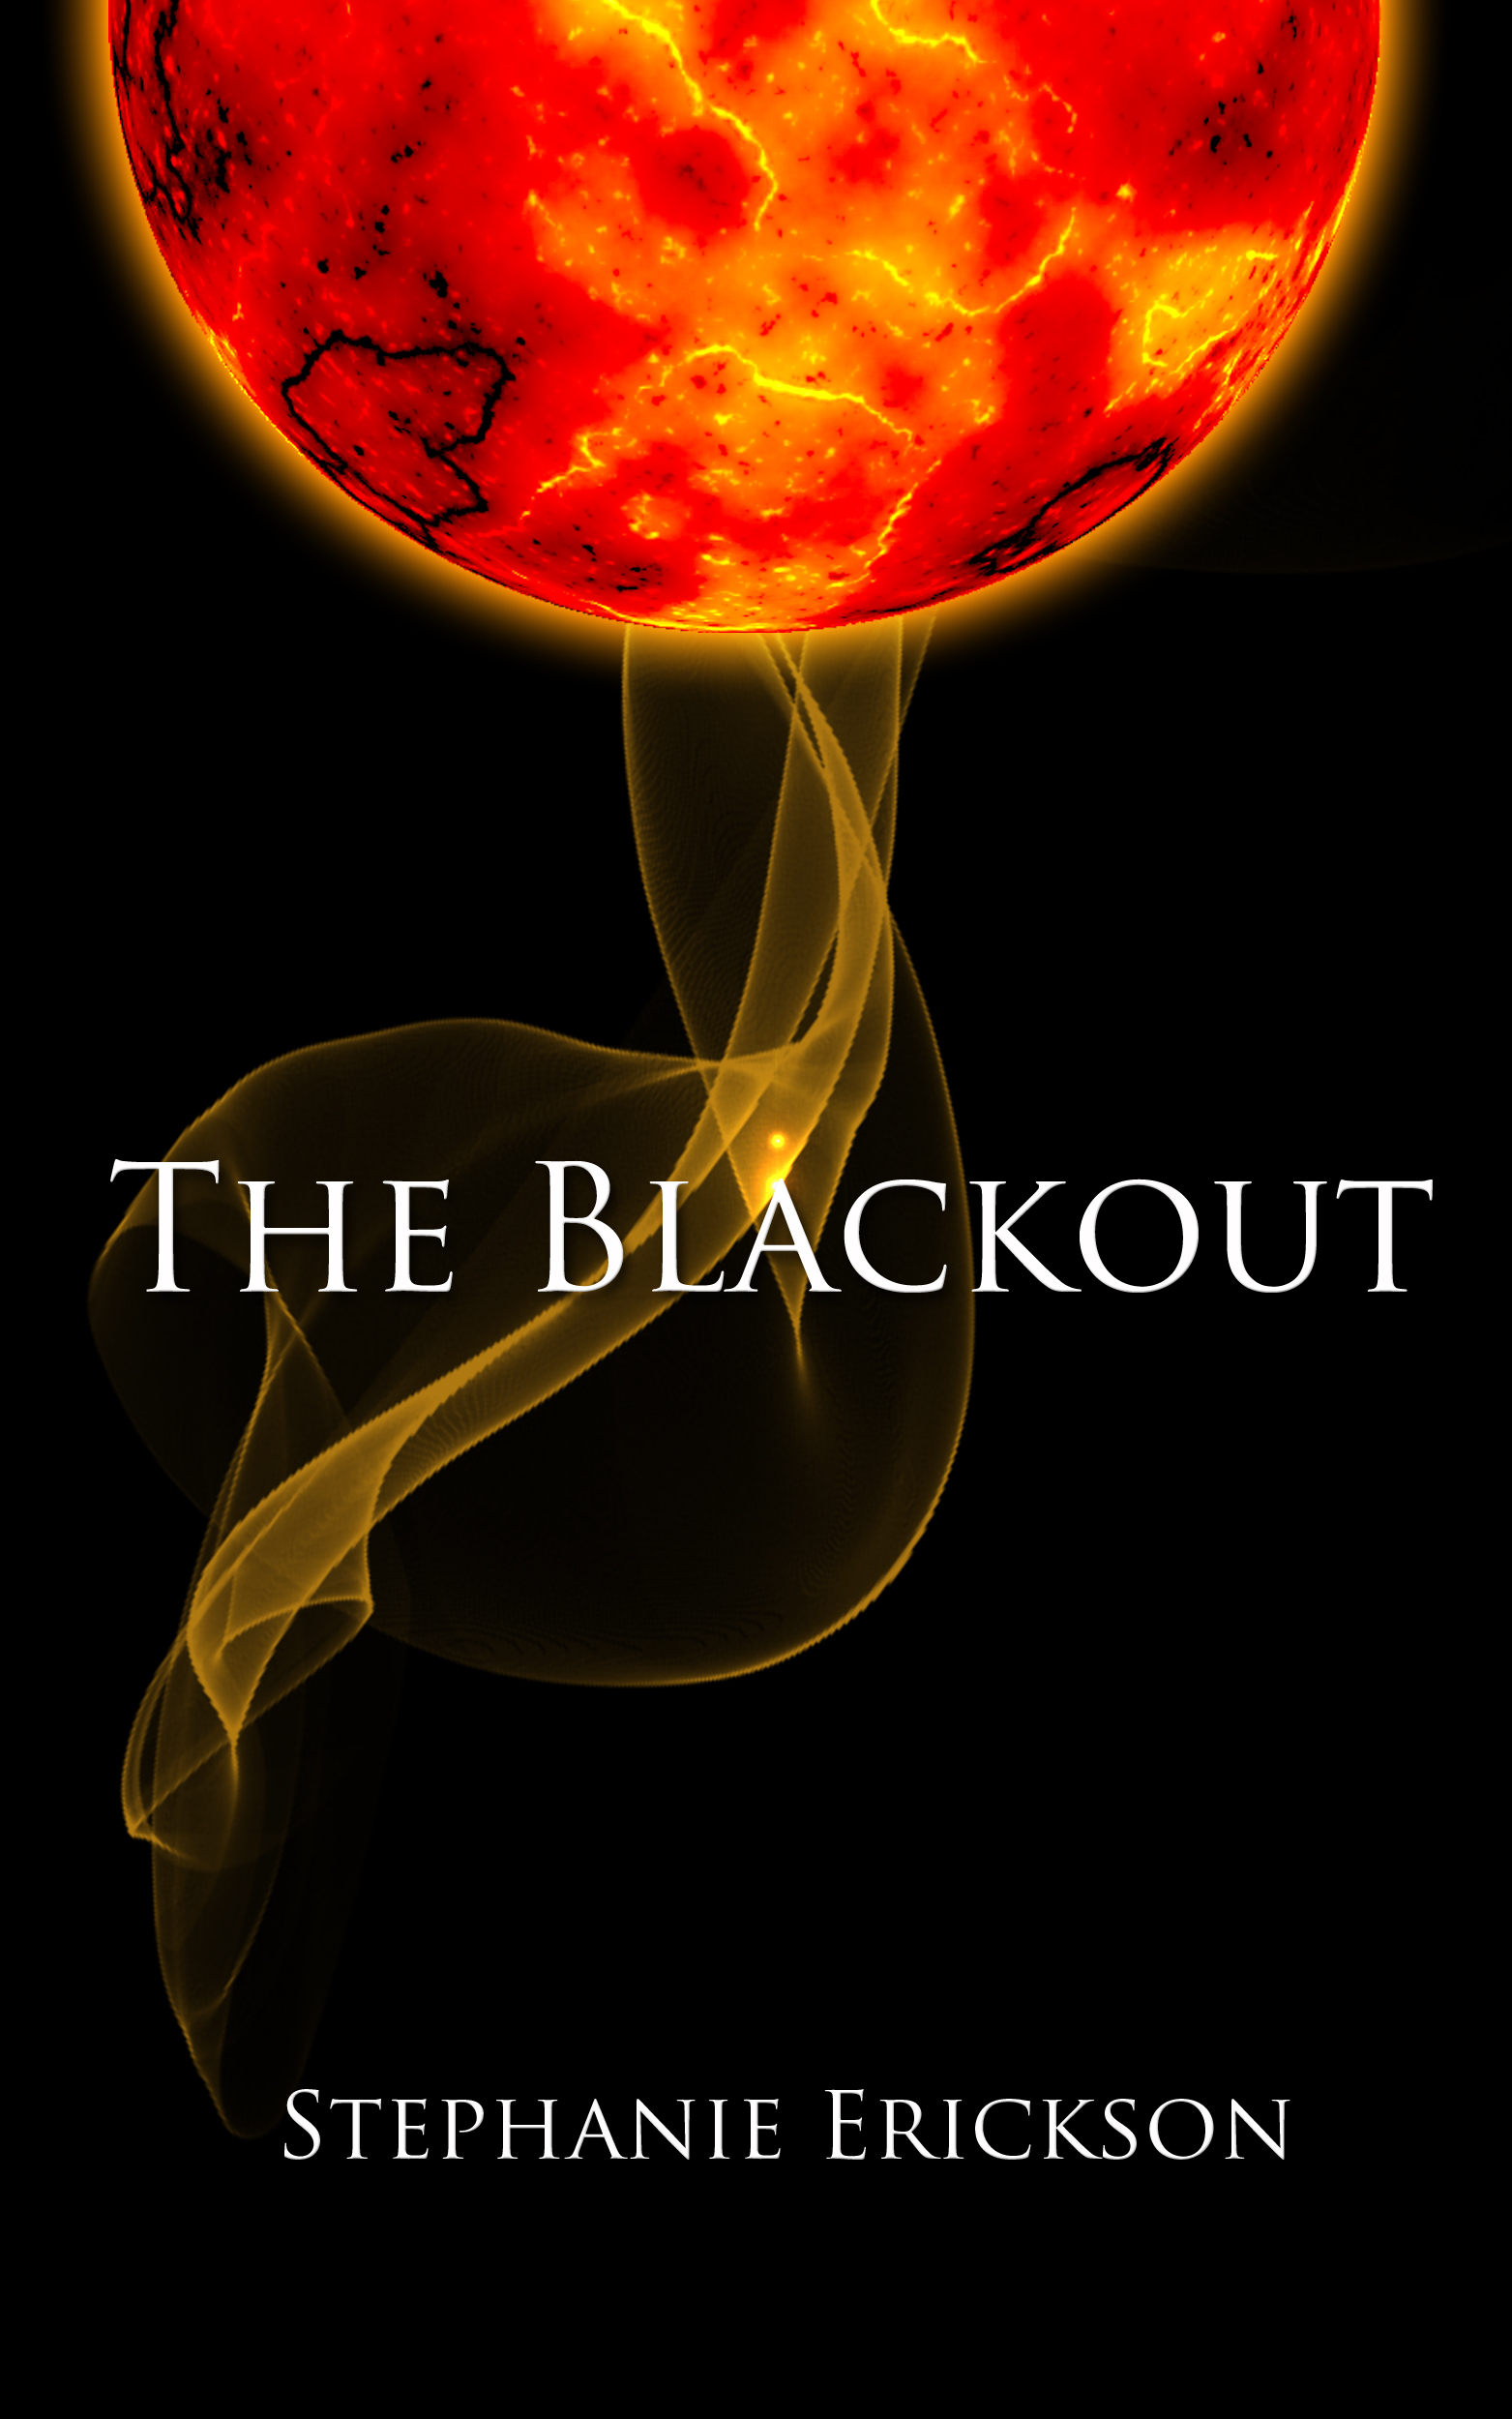 The Blackout by Stephanie Erickson